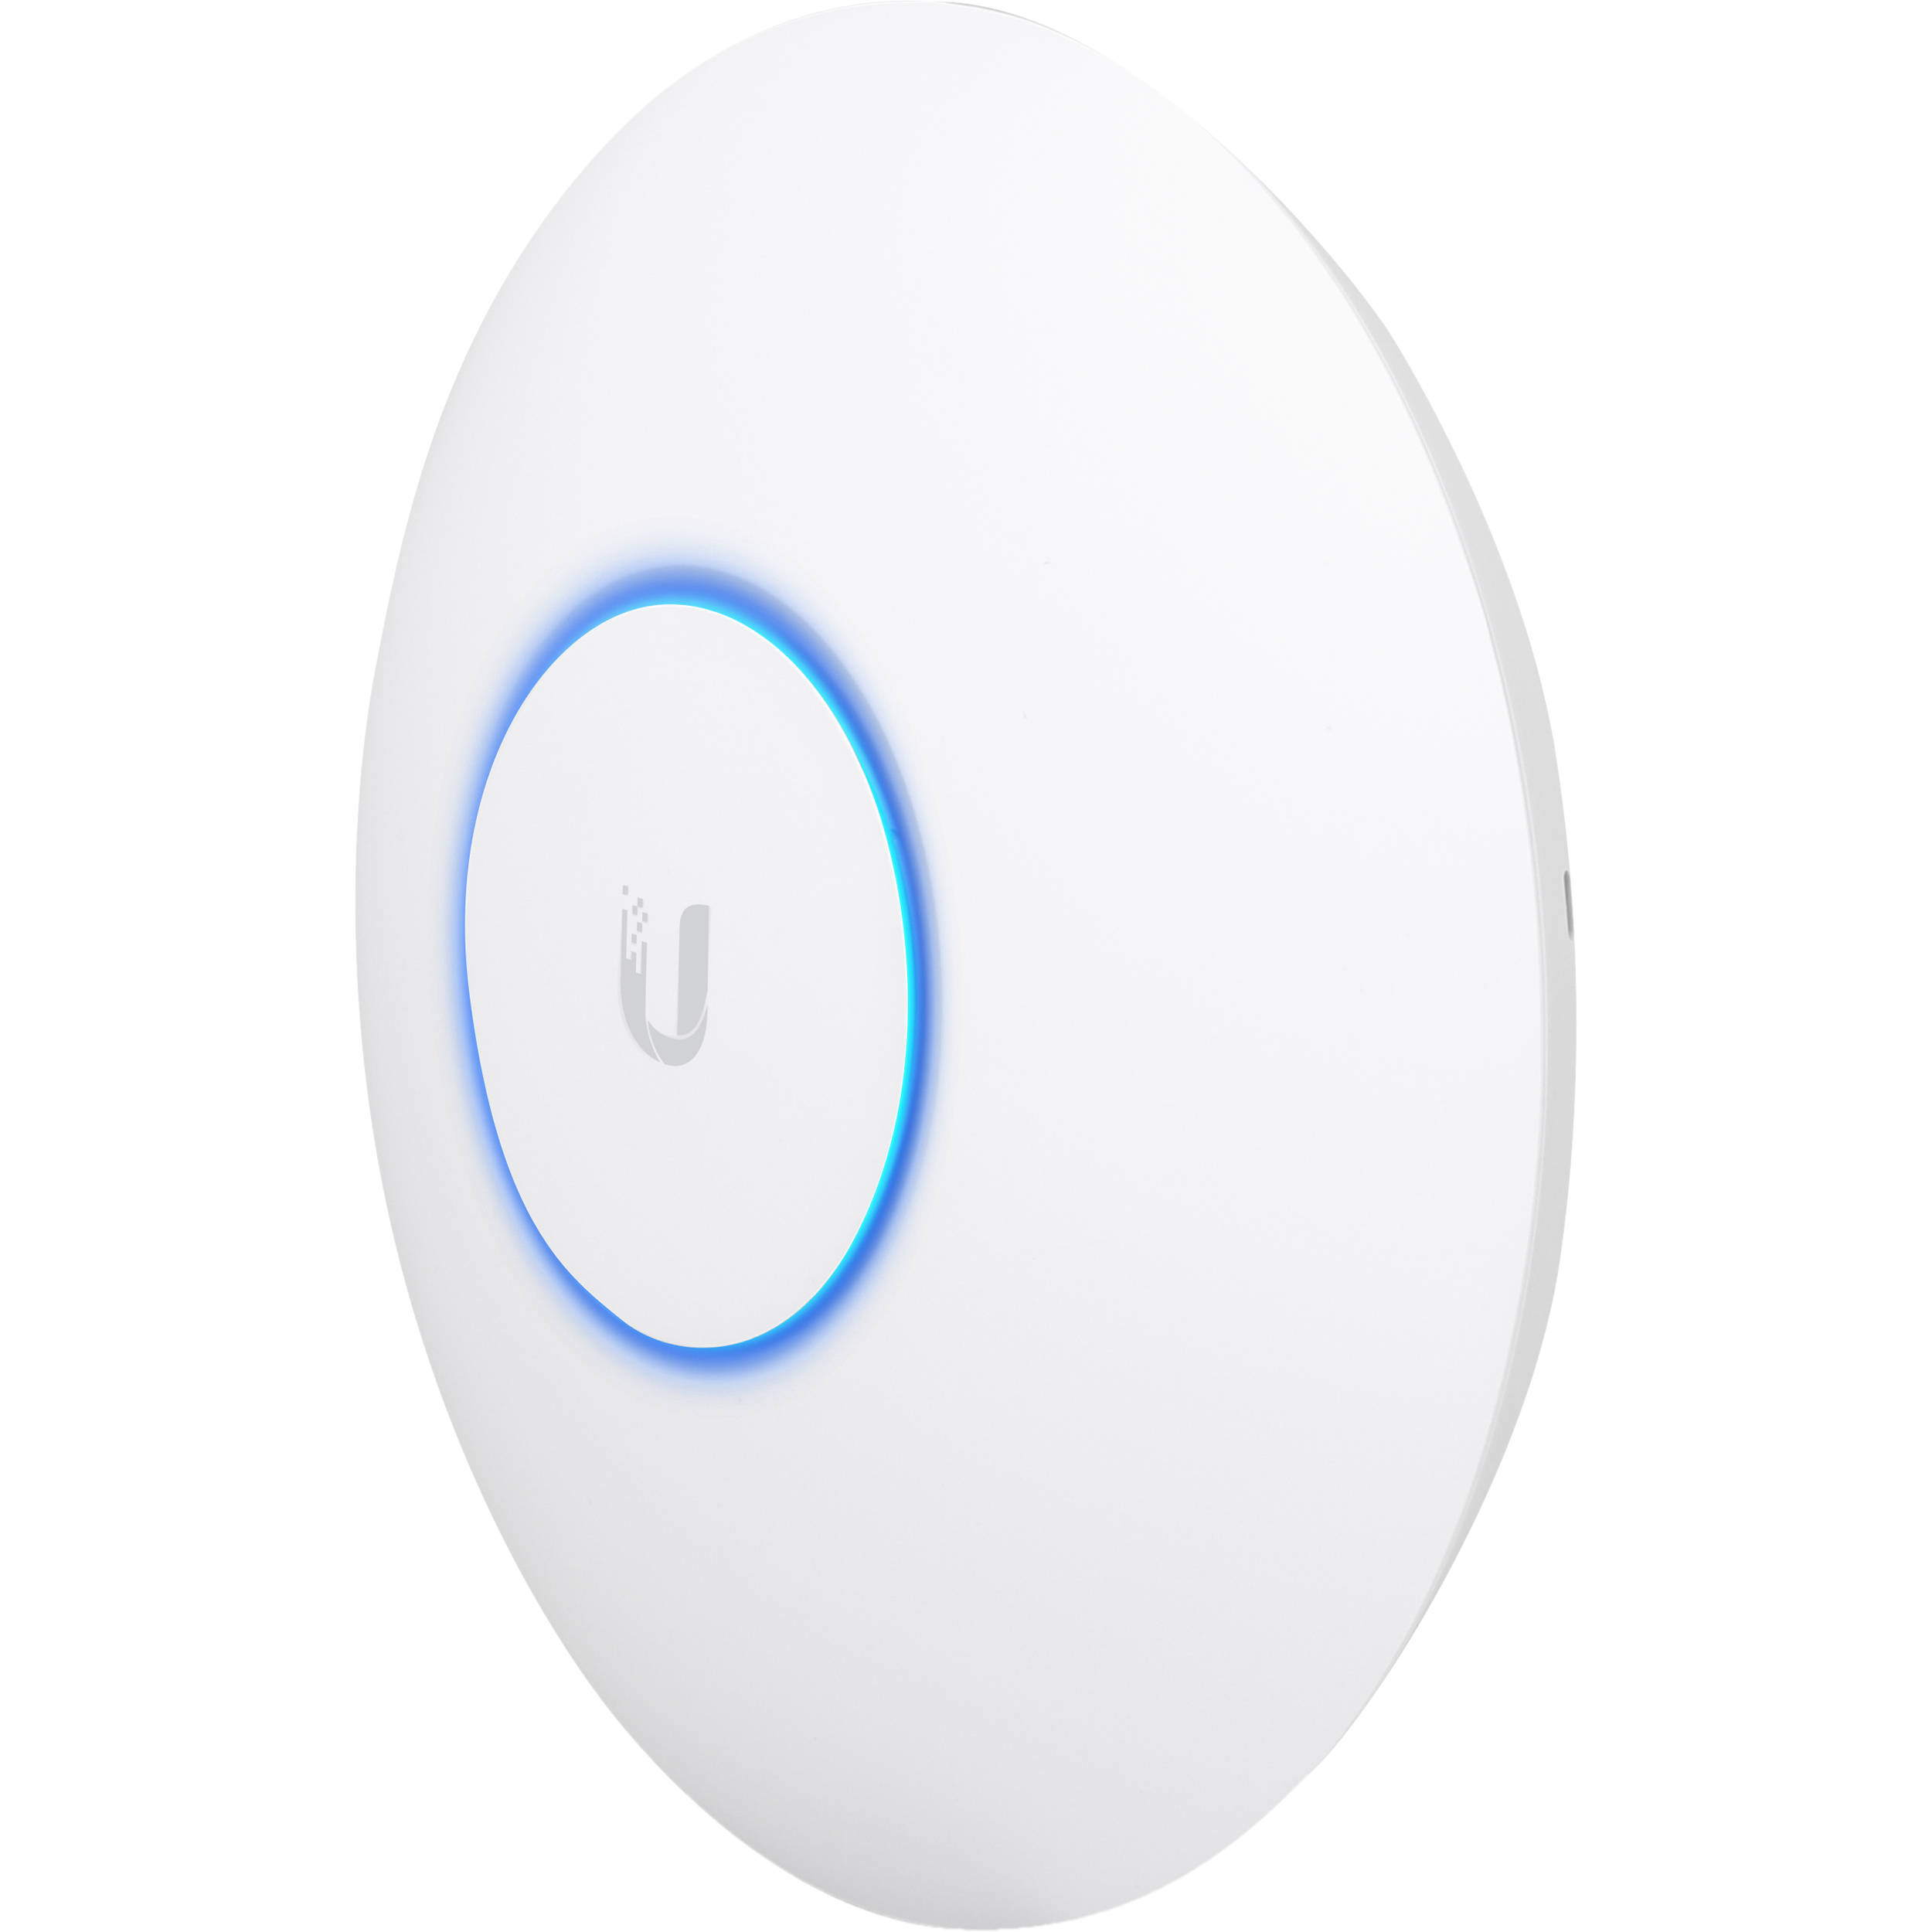 Ubiquiti networks uap ac hd us wave 2 enterprise uap ac hd us for Point acces wifi exterieur